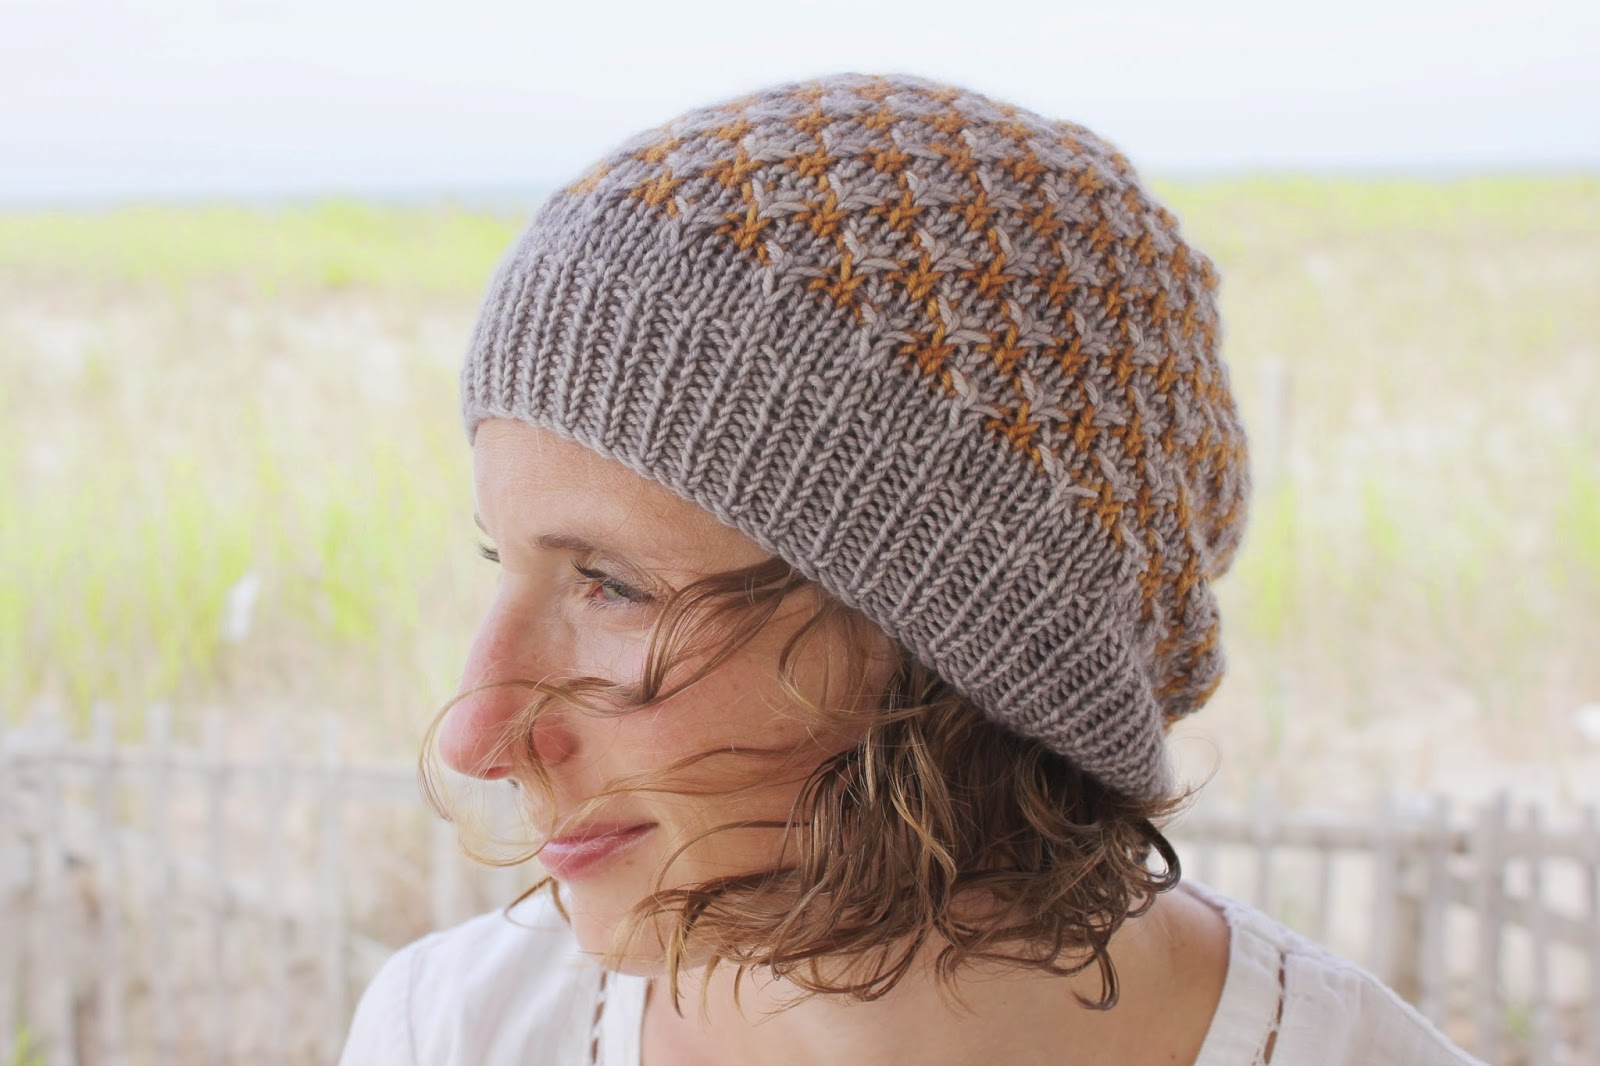 Knitting Patterns For Small Hats : Small Summer Knitting - the Algonquin Hat ~ BabyCocktails